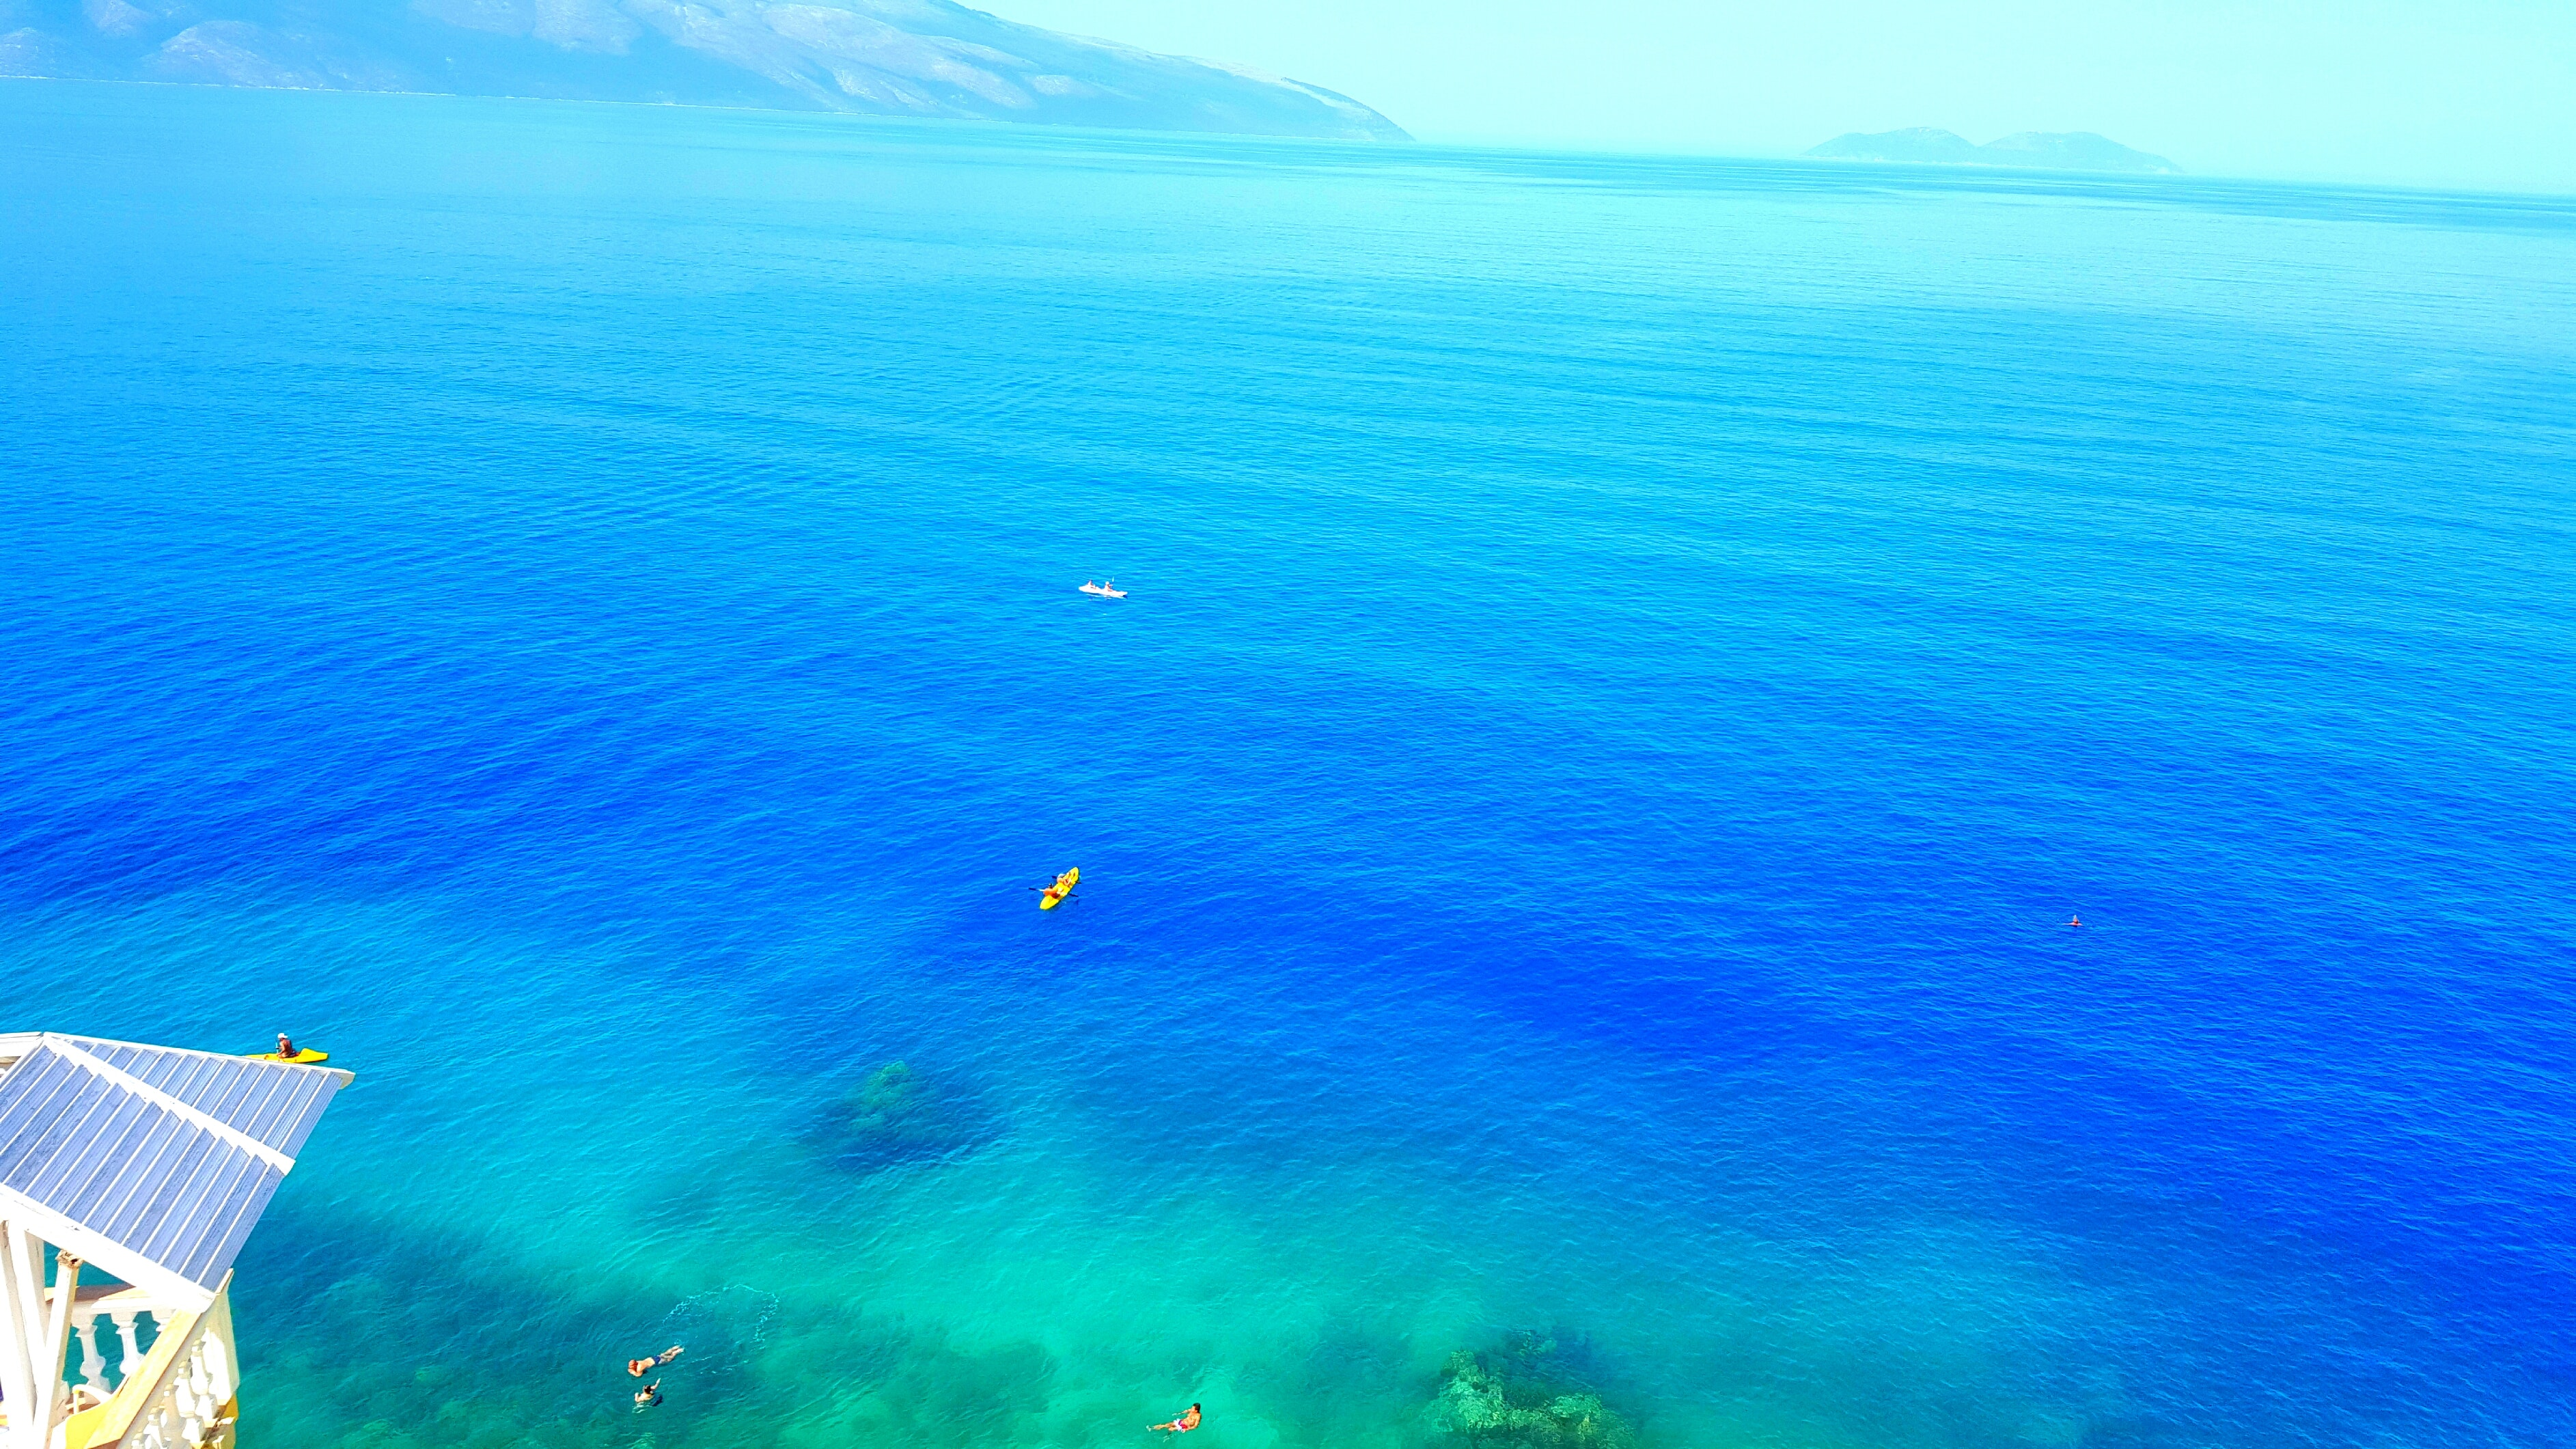 Blue Body of Water, Beach, Seascape, Turquoise, Tropical, HQ Photo